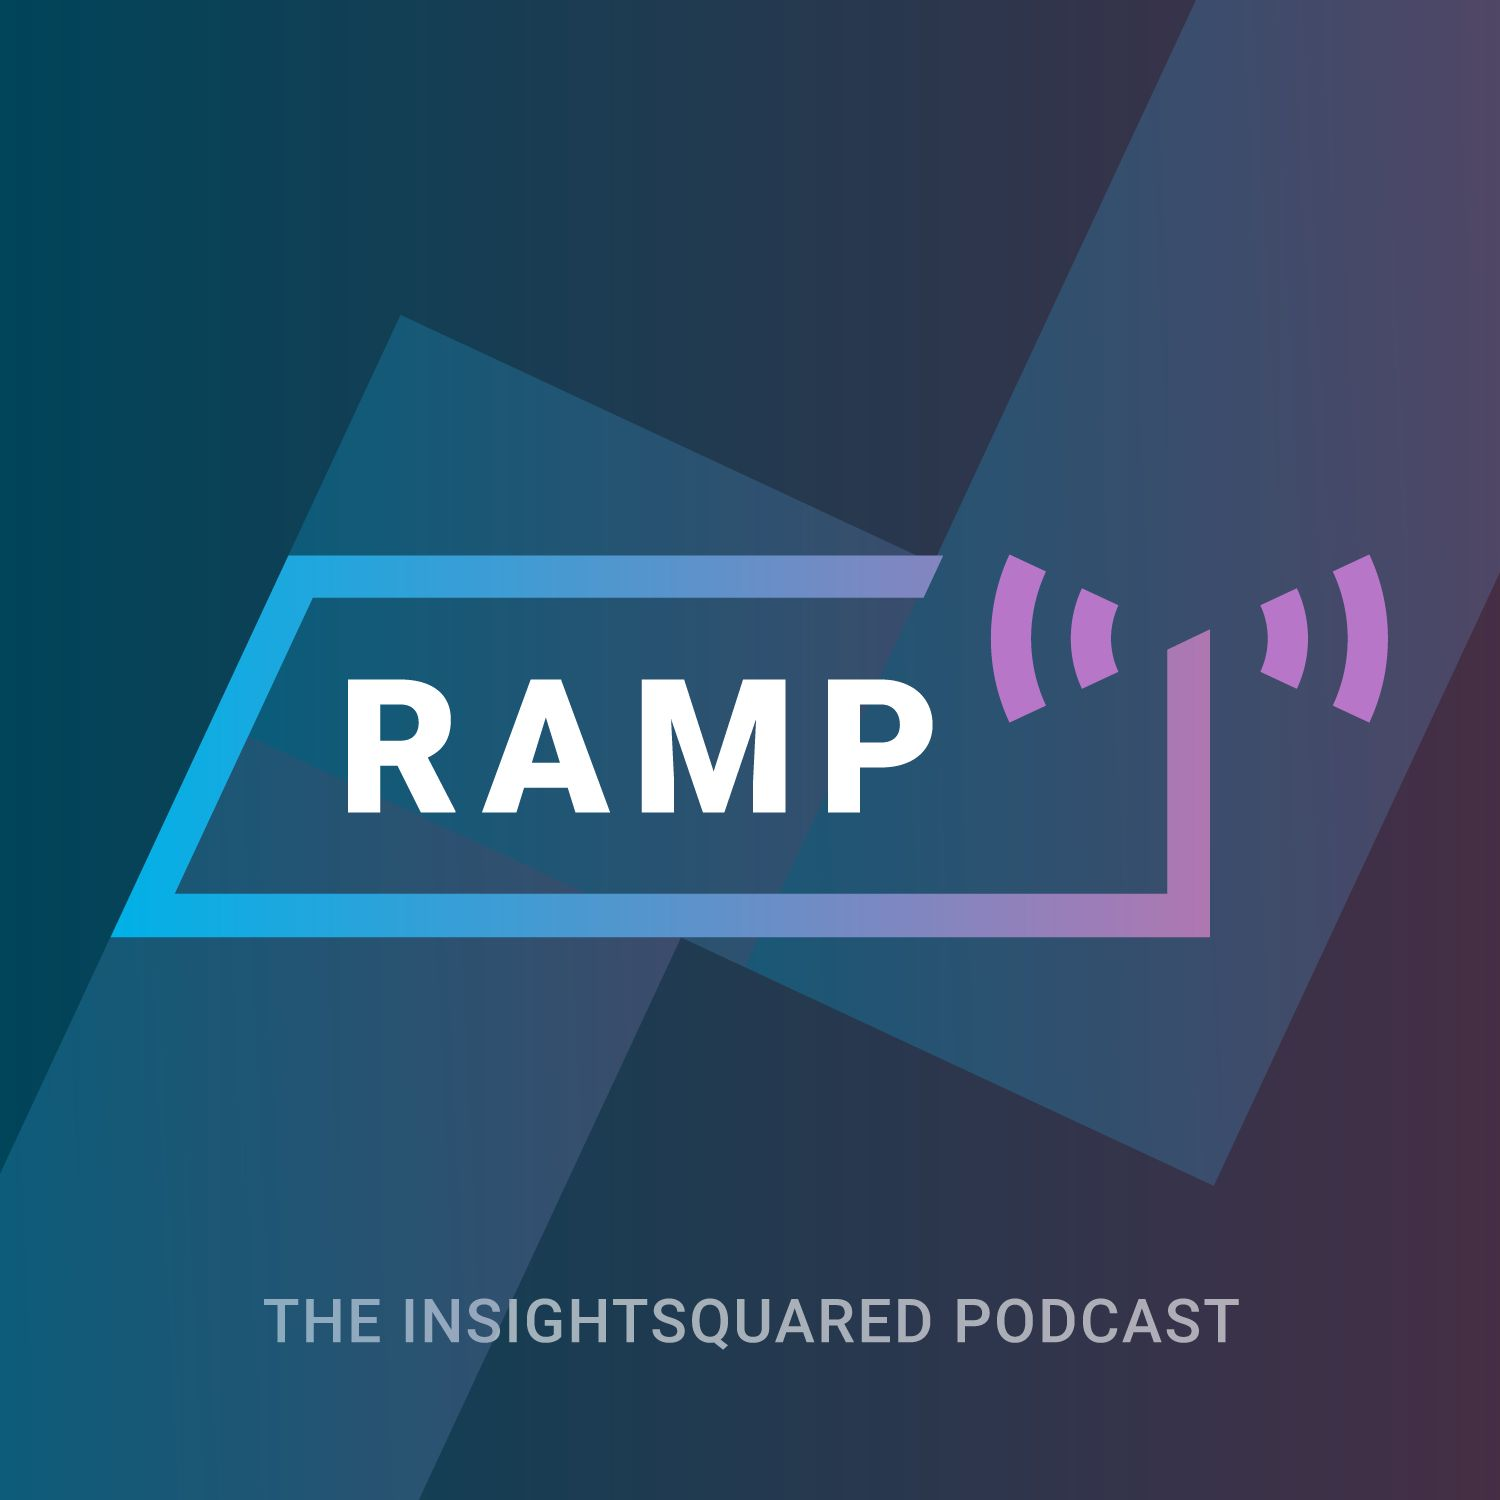 Ramp: The SaaS Analytics Podcast